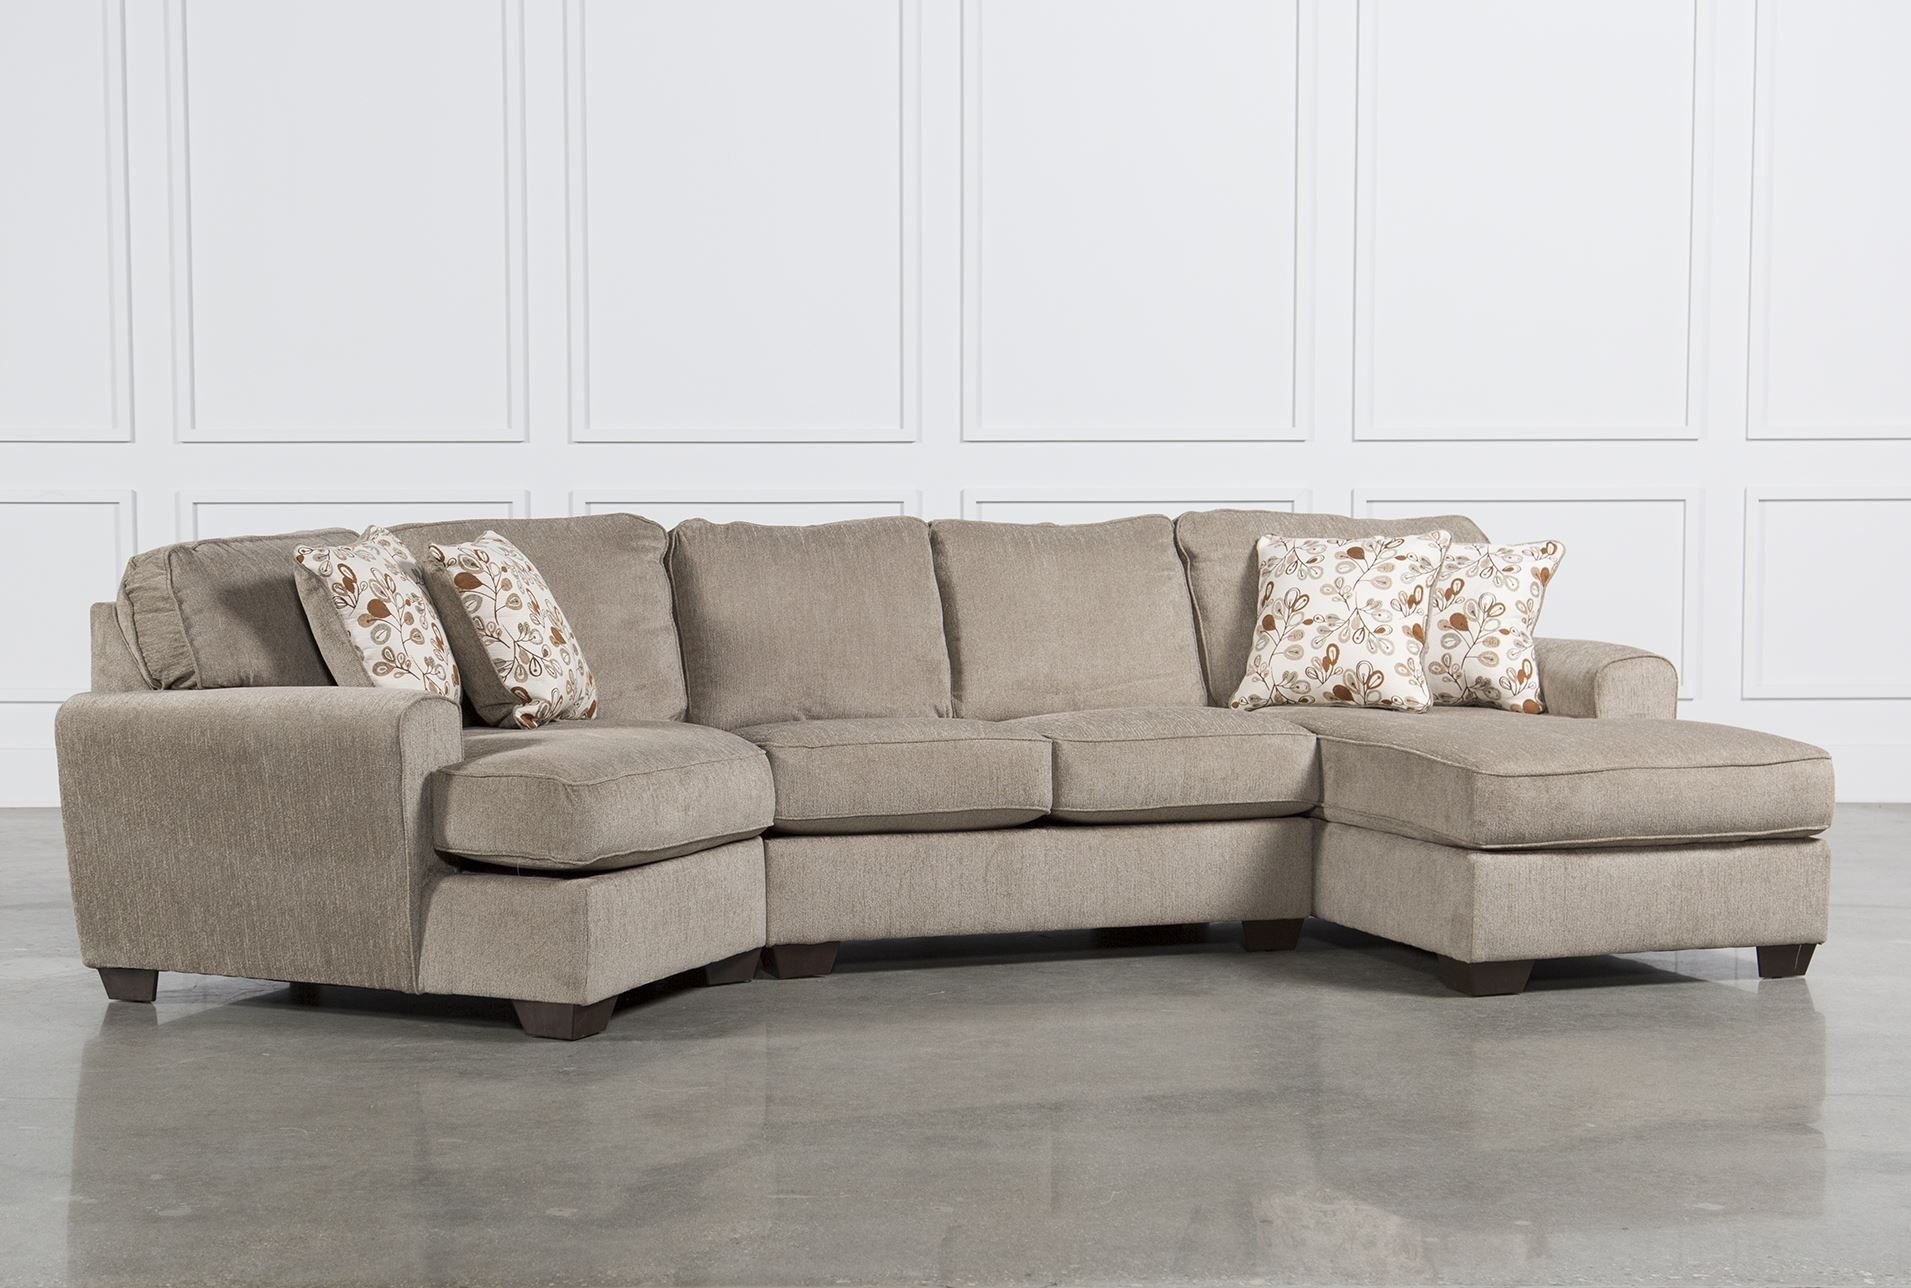 Microfiber Sectional Sofa With Chaise And Cuddle Sectional Sofas Are Just One Piece Of Furn Sectional Sofa With Chaise Small Sectional Sofa Couch With Chaise